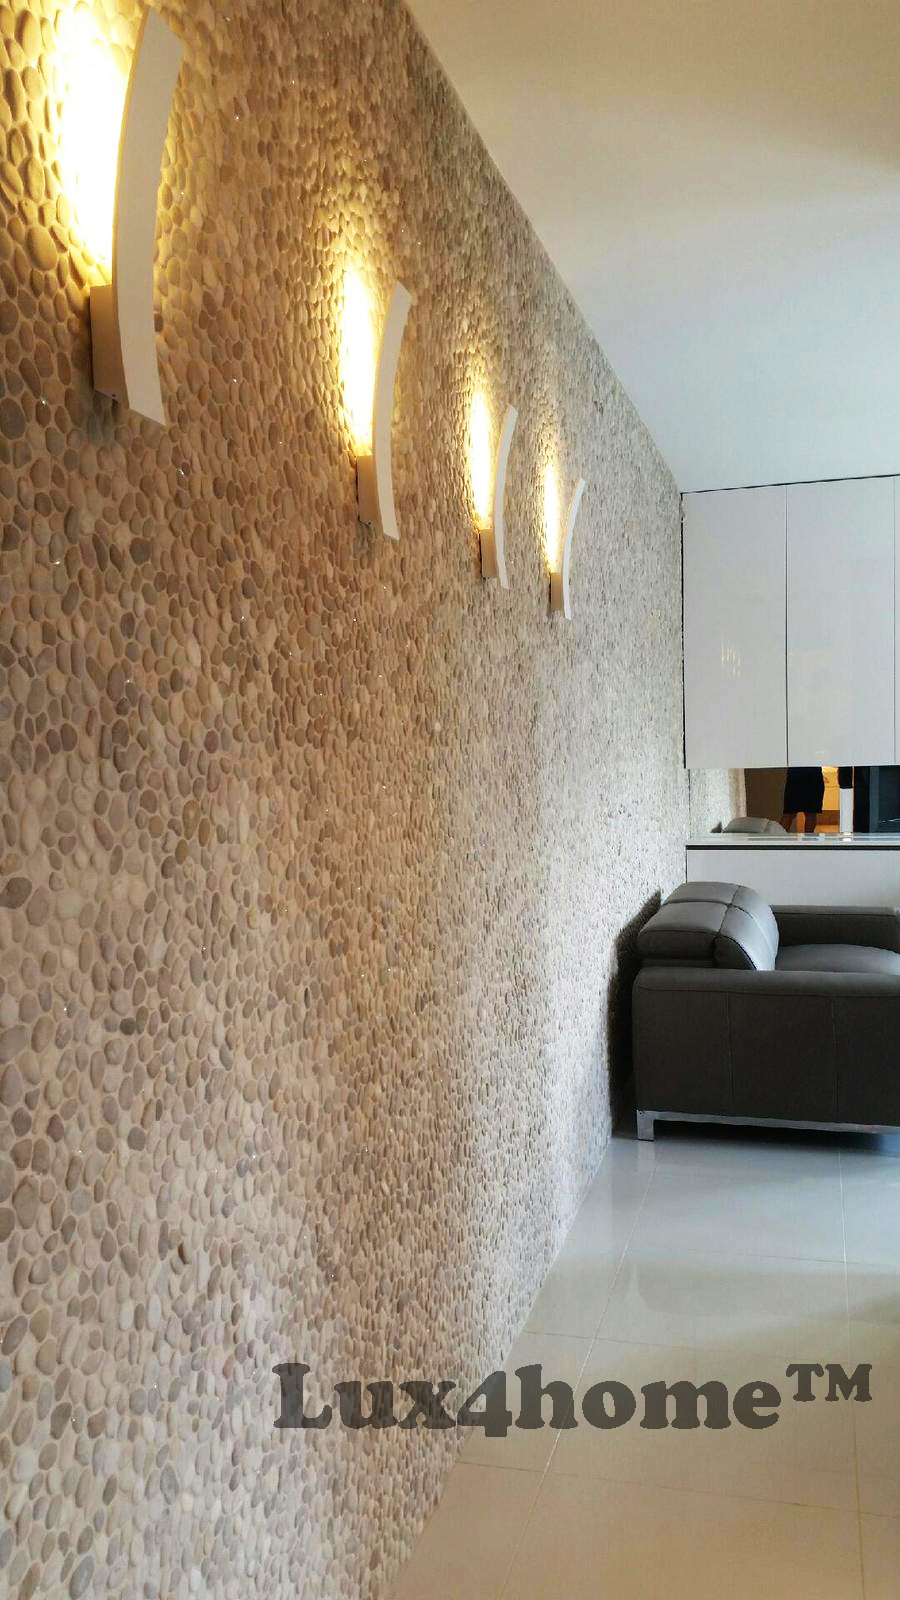 Pebble-Tile-Wall-12